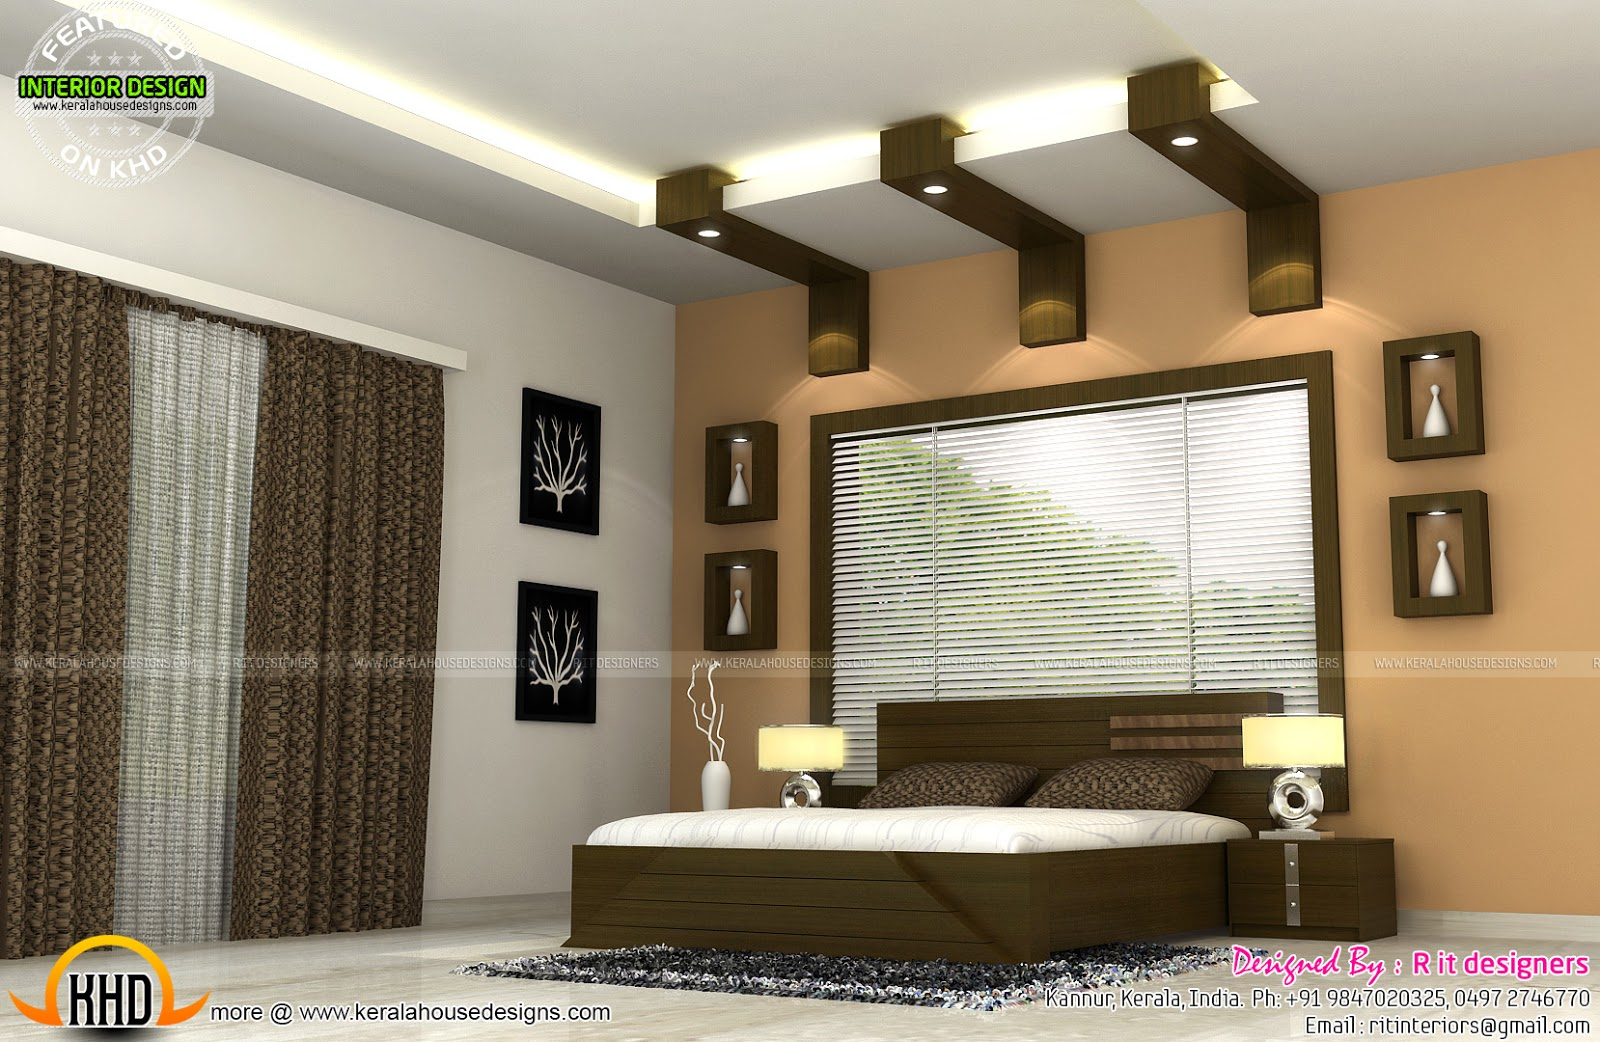 Interiors of bedrooms and kitchen kerala home design and for Interior designs home